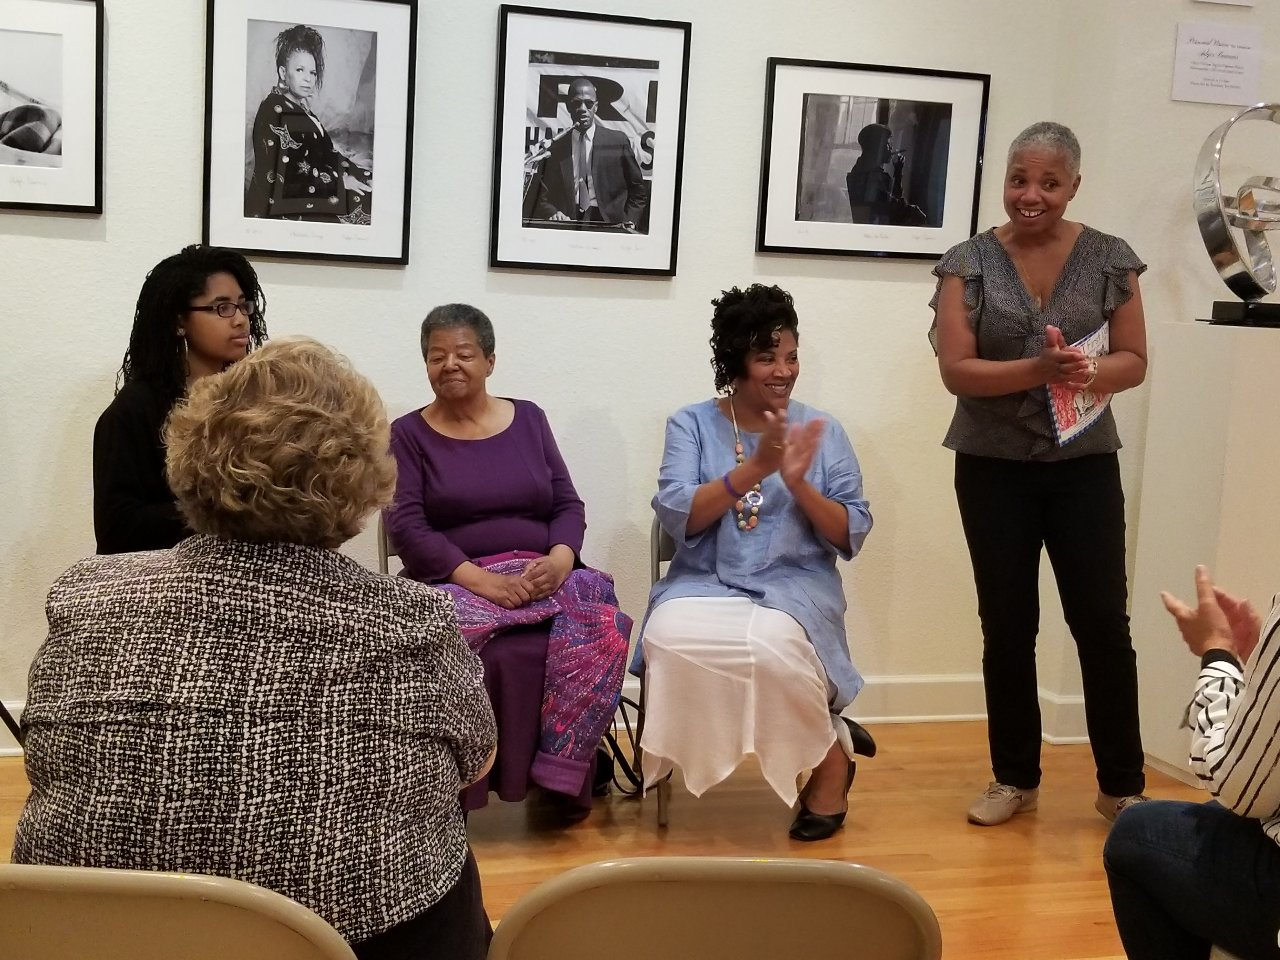 Elizabeth Eckford, Eurydice Stanley, and Grace Stanley at presentation